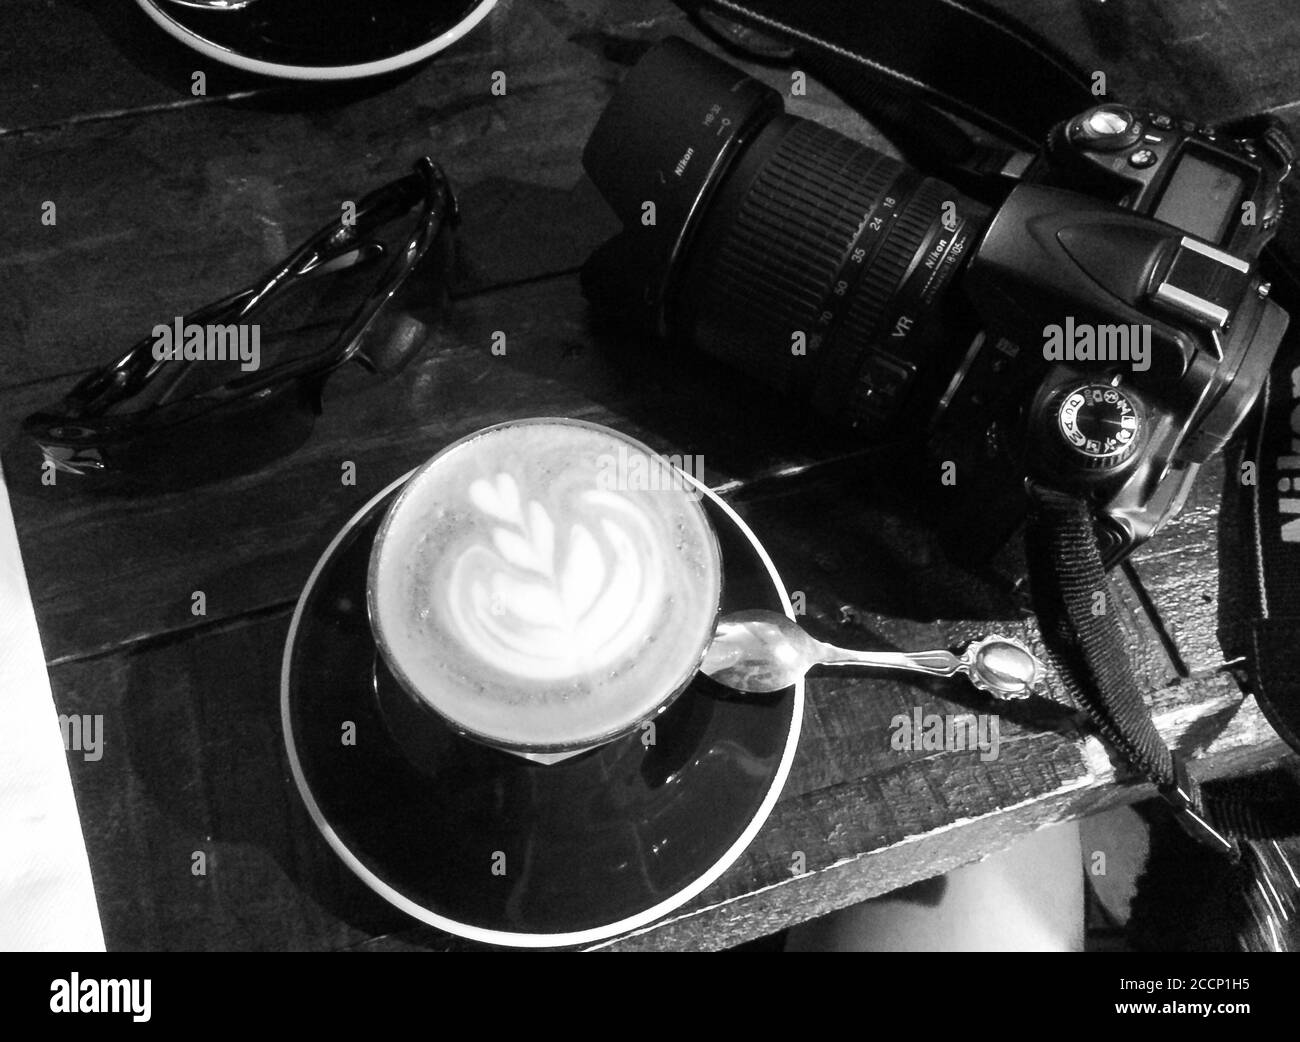 Dslr Wallpaper High Resolution Stock Photography And Images Alamy